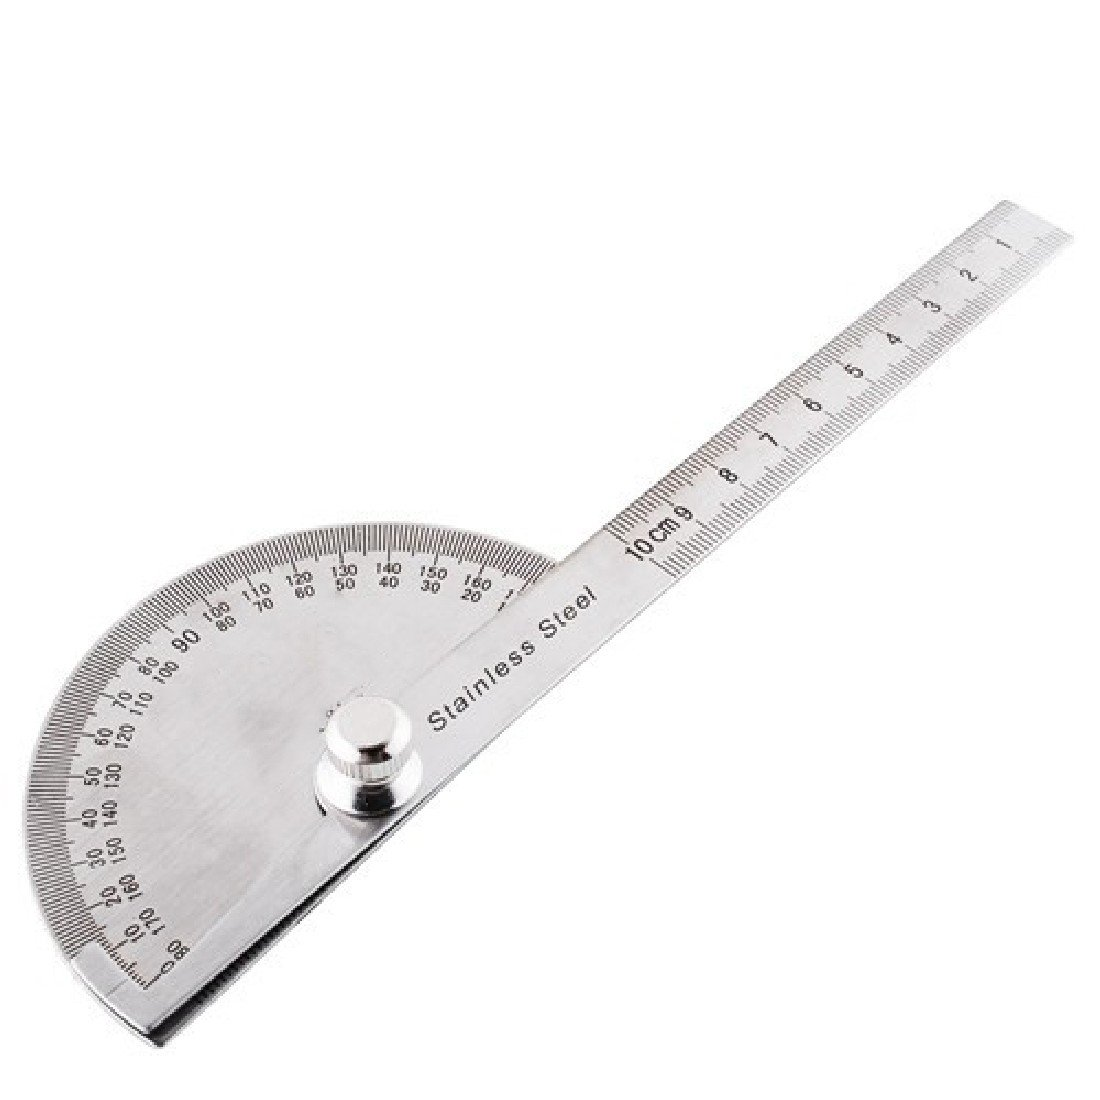 KS Tools 300.0701  Protractor with rule 400mm